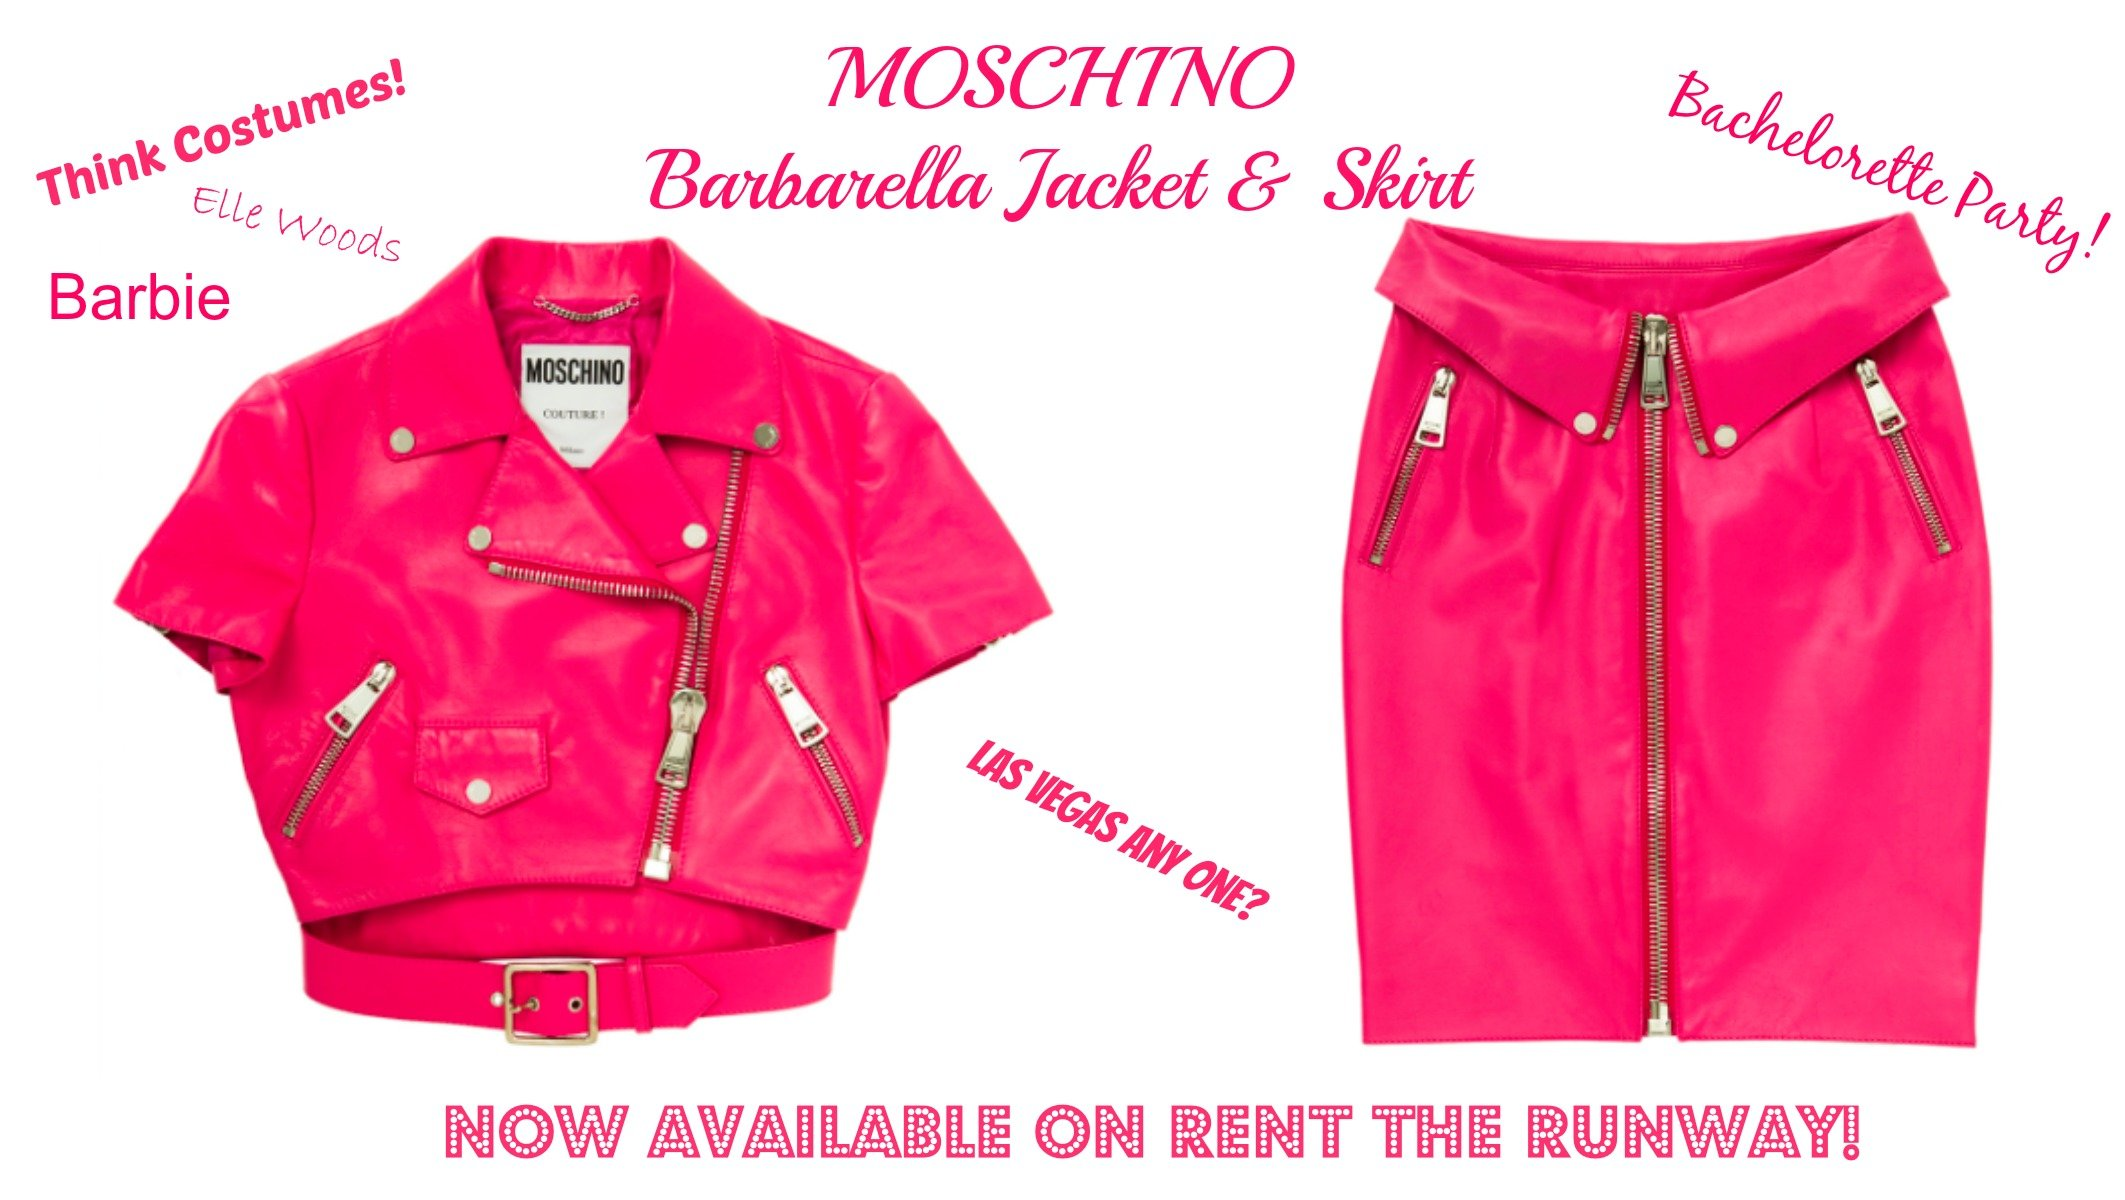 MOSCHINO Barbarella Jacket & Skirt, Barbie costumes, Elle Woods costumes, party pretty